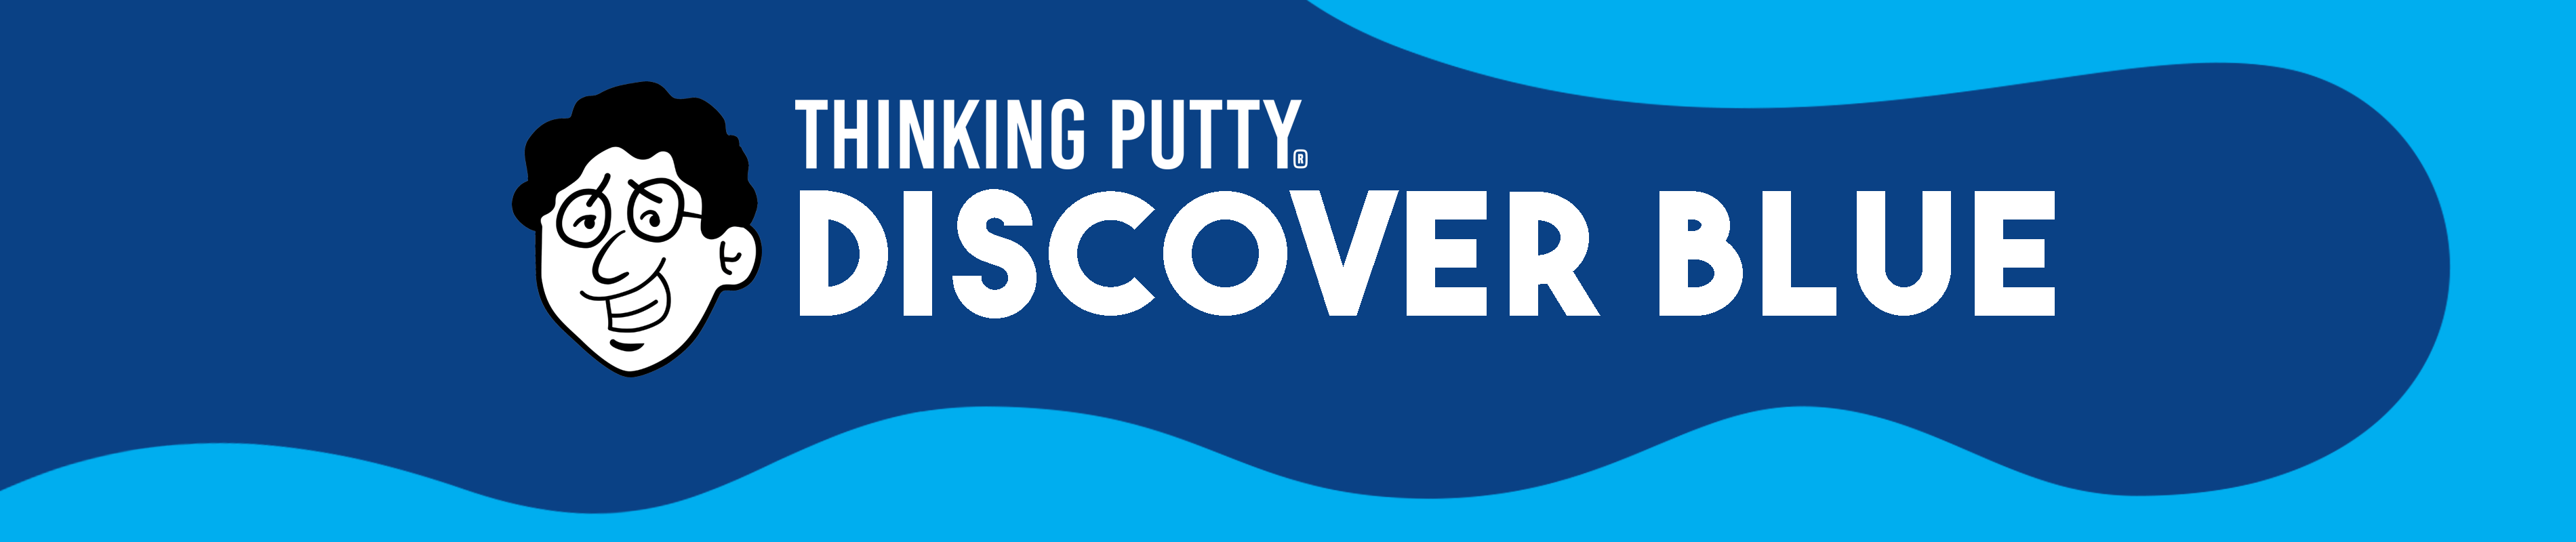 Shop Blue Thinking Putty